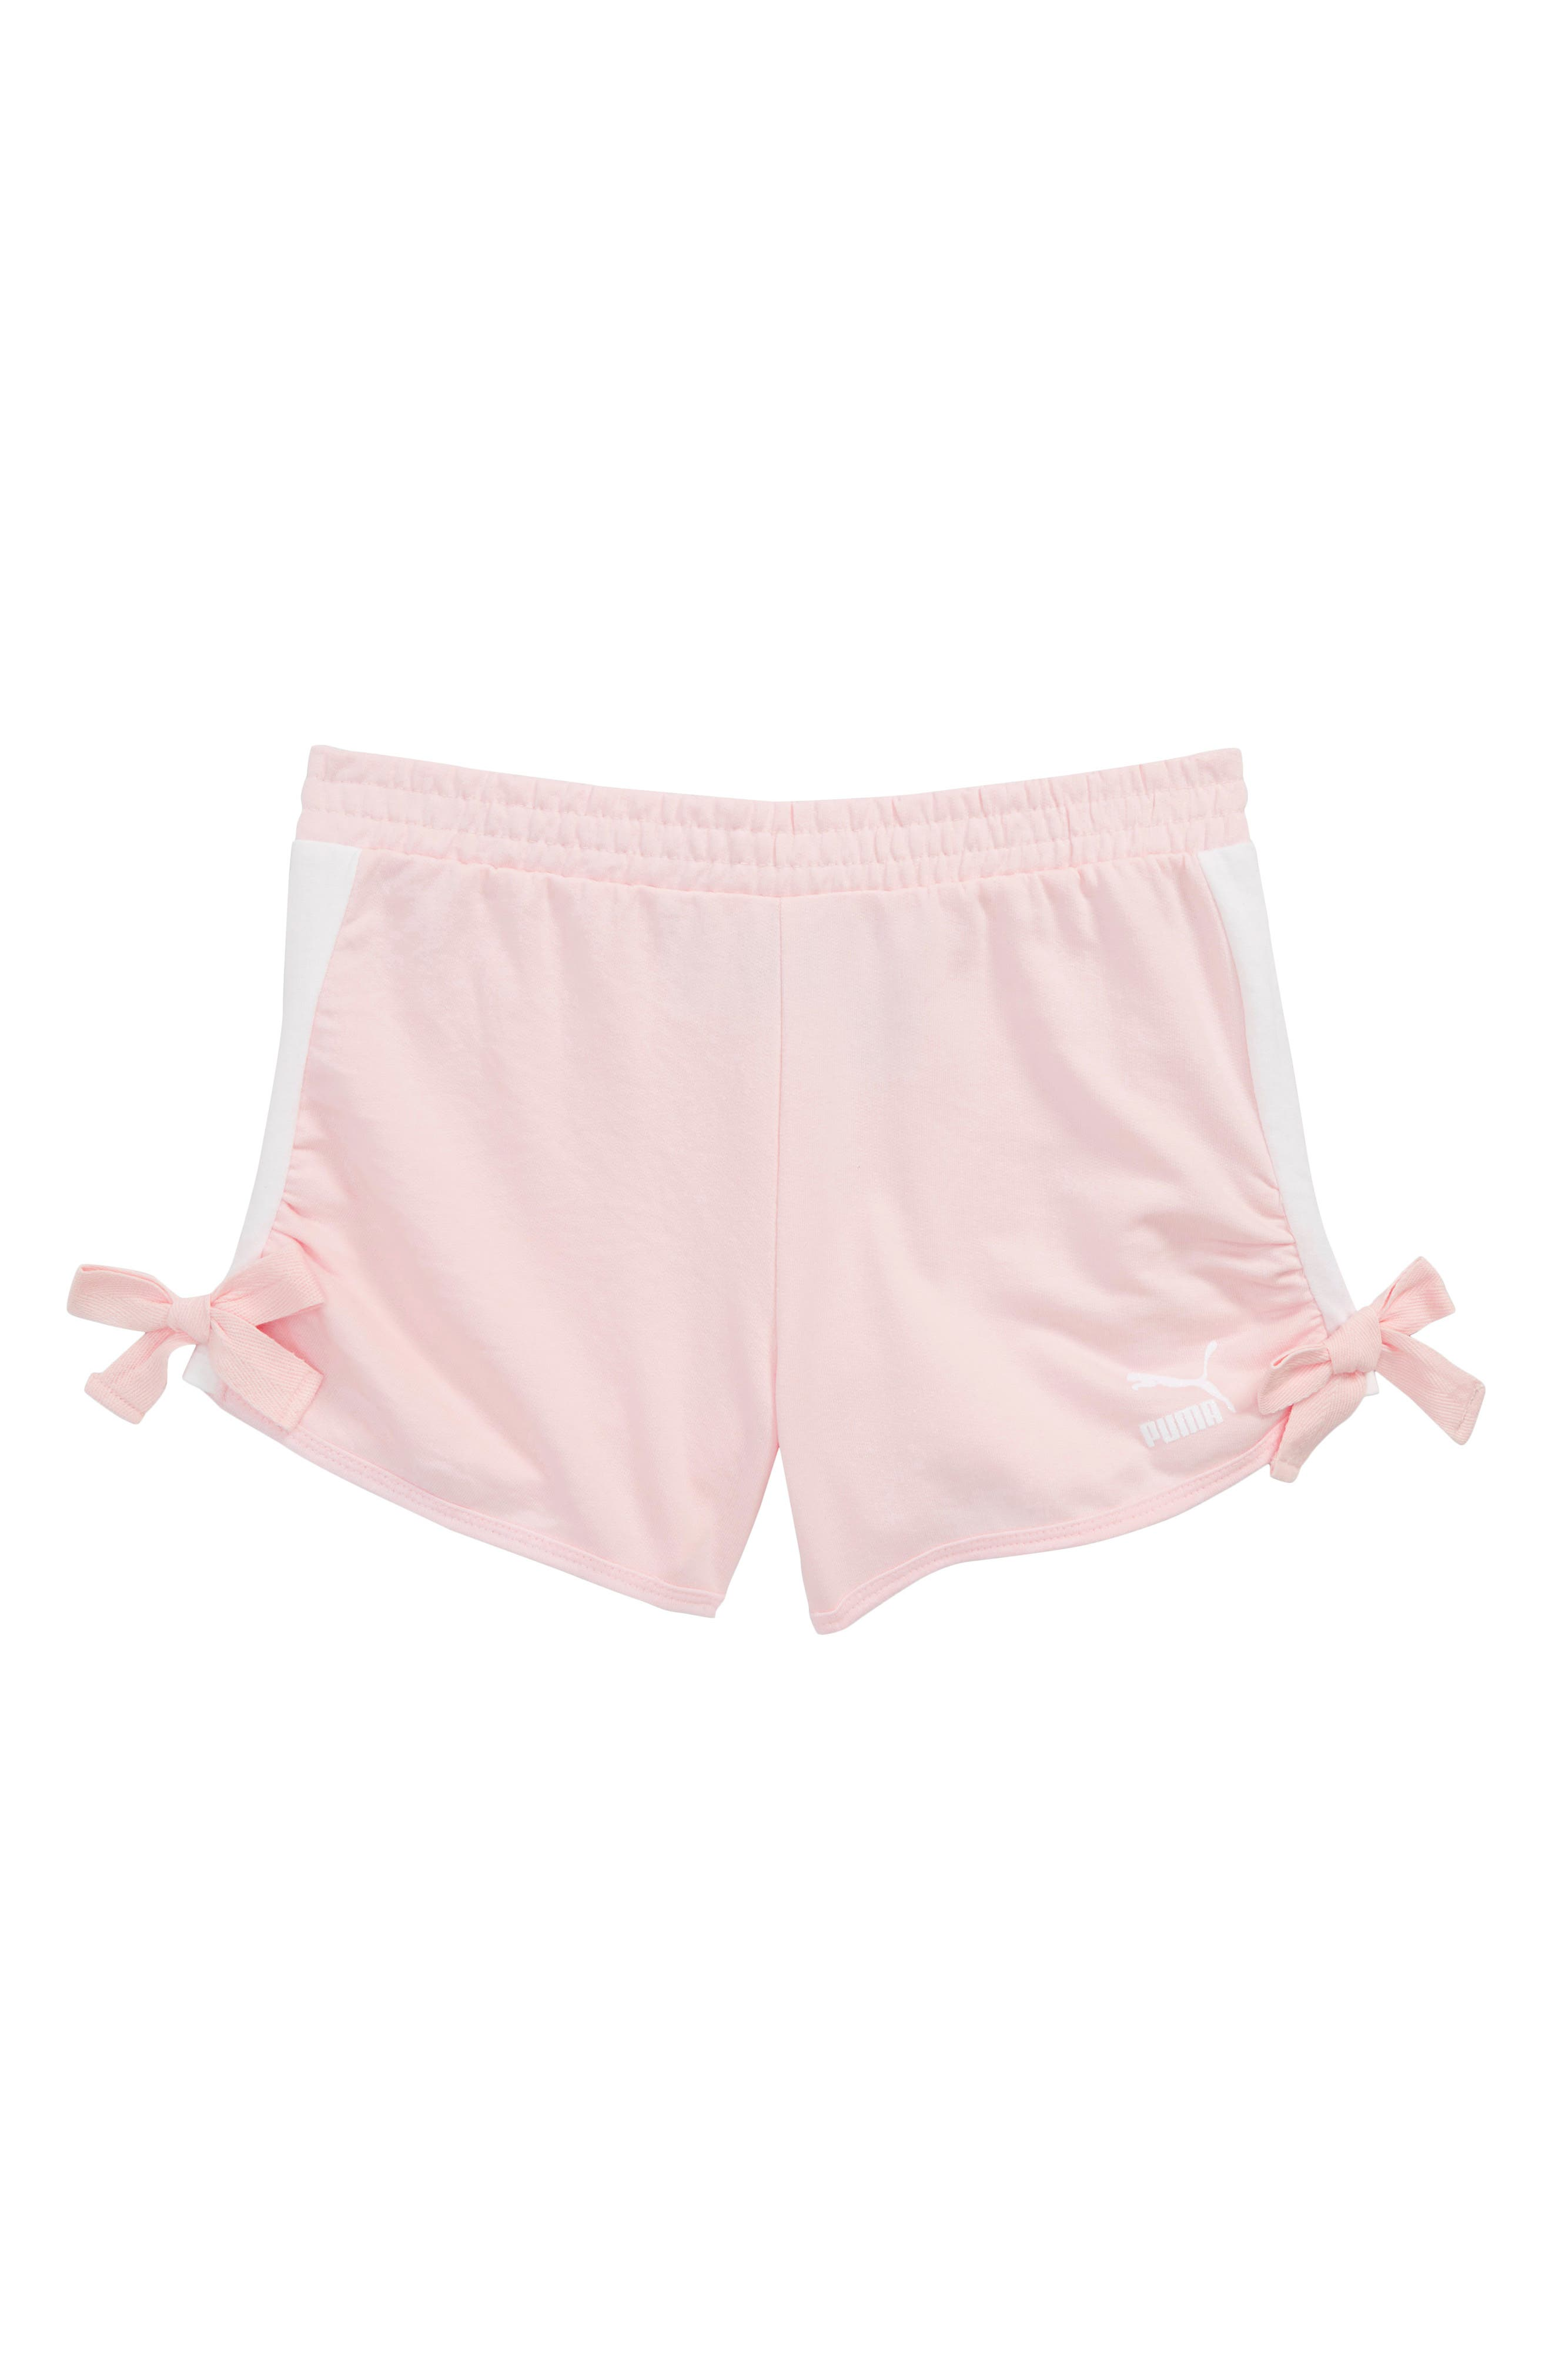 Bow Shorts,                         Main,                         color, Pearl